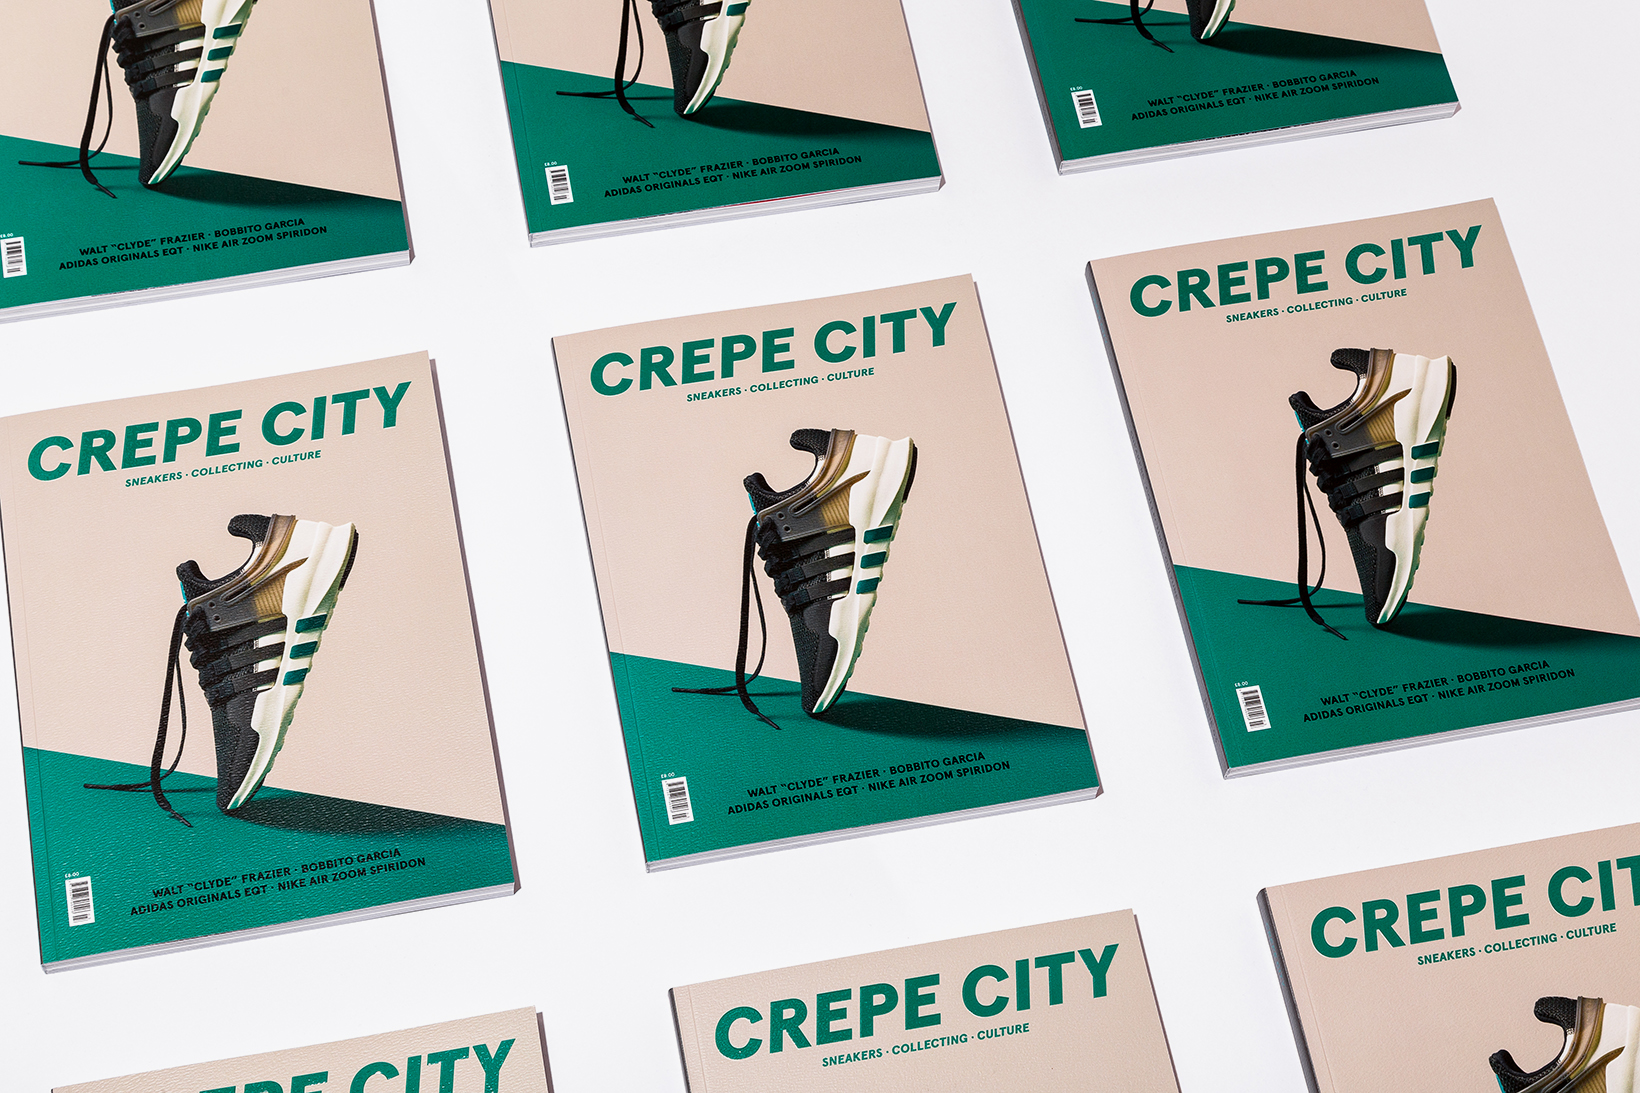 'CREPE CITY' Presents Its Third Issue